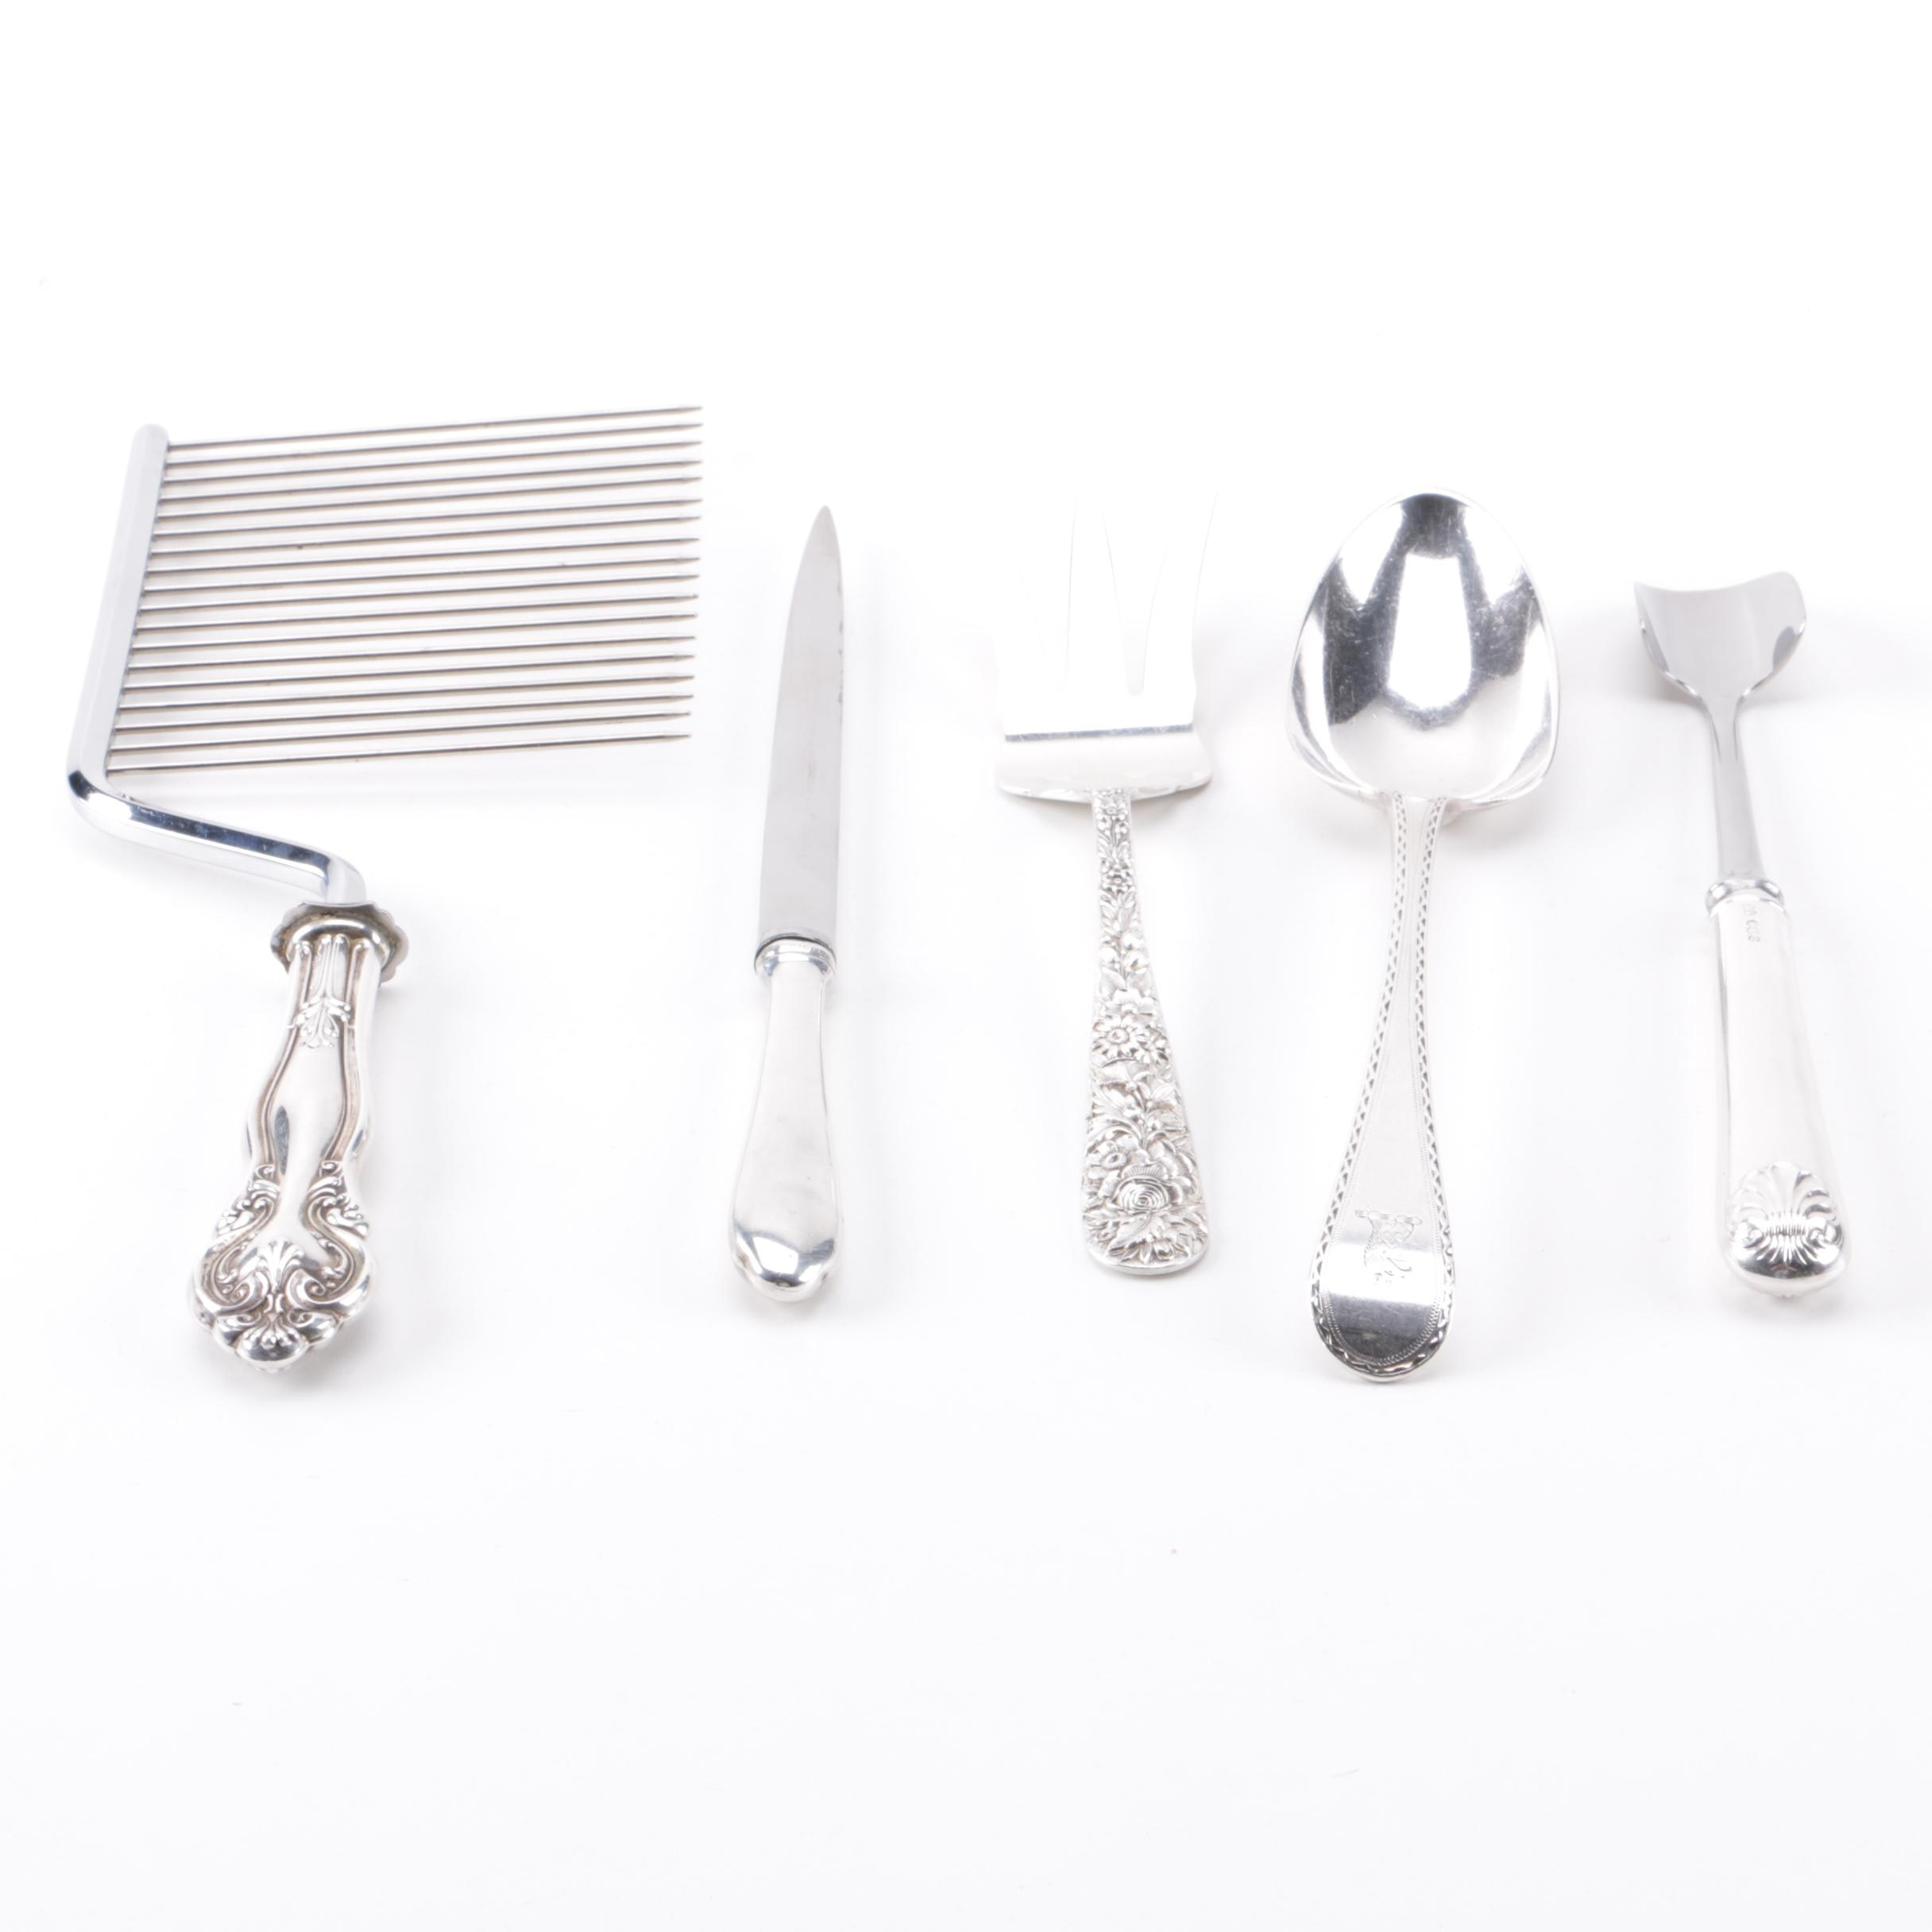 William Sumner & Richard Crossley and Other Sterling Silver Utensils